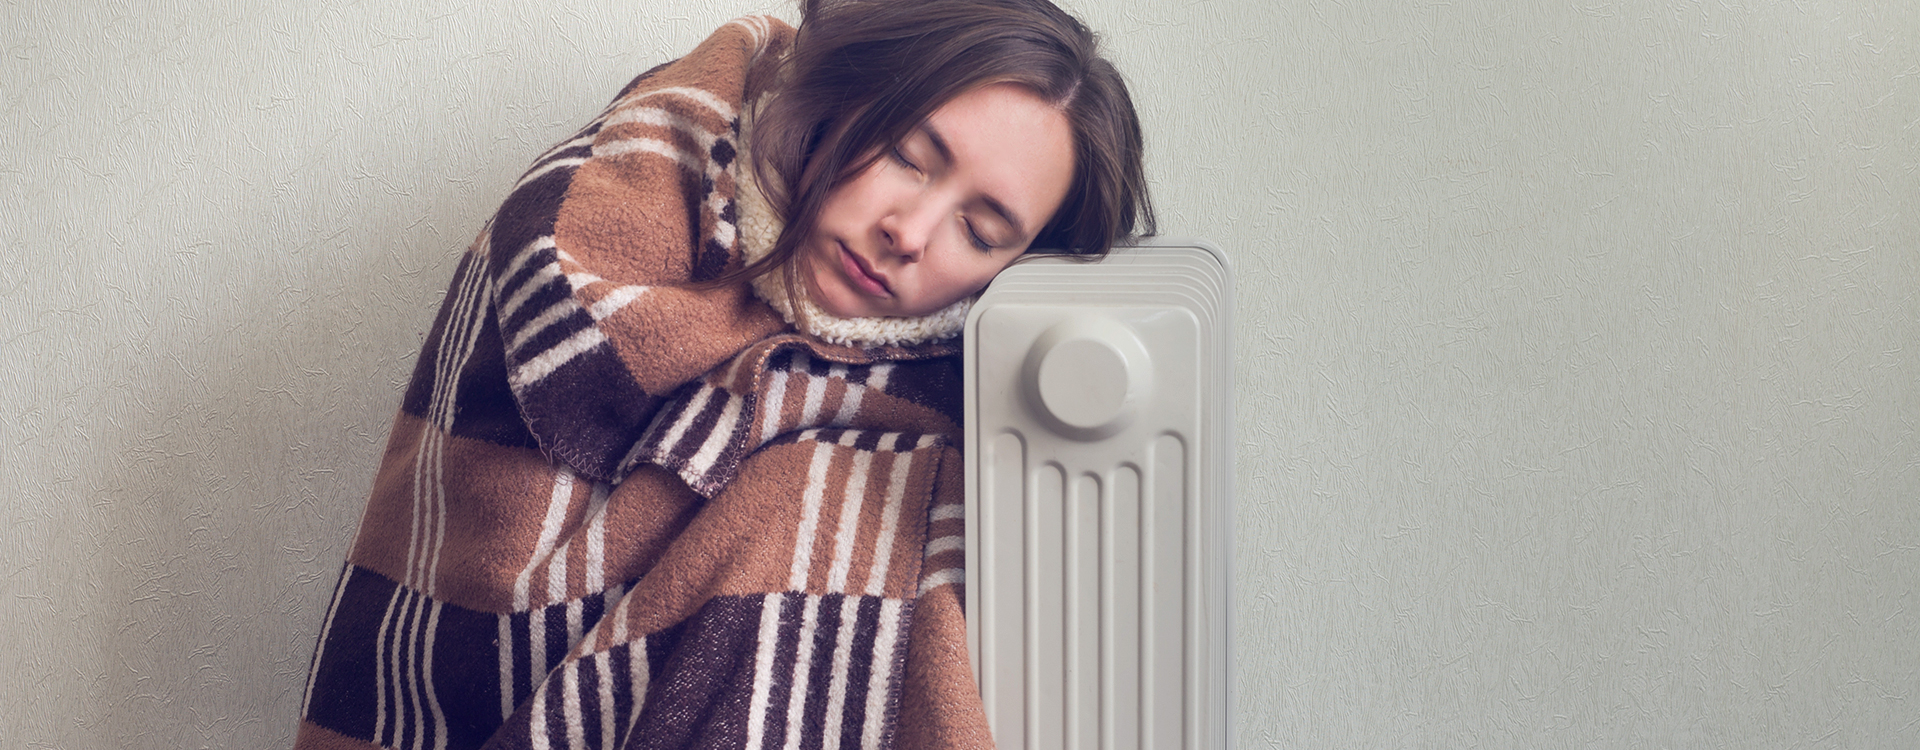 NO MORE: HEATING CUDDLES